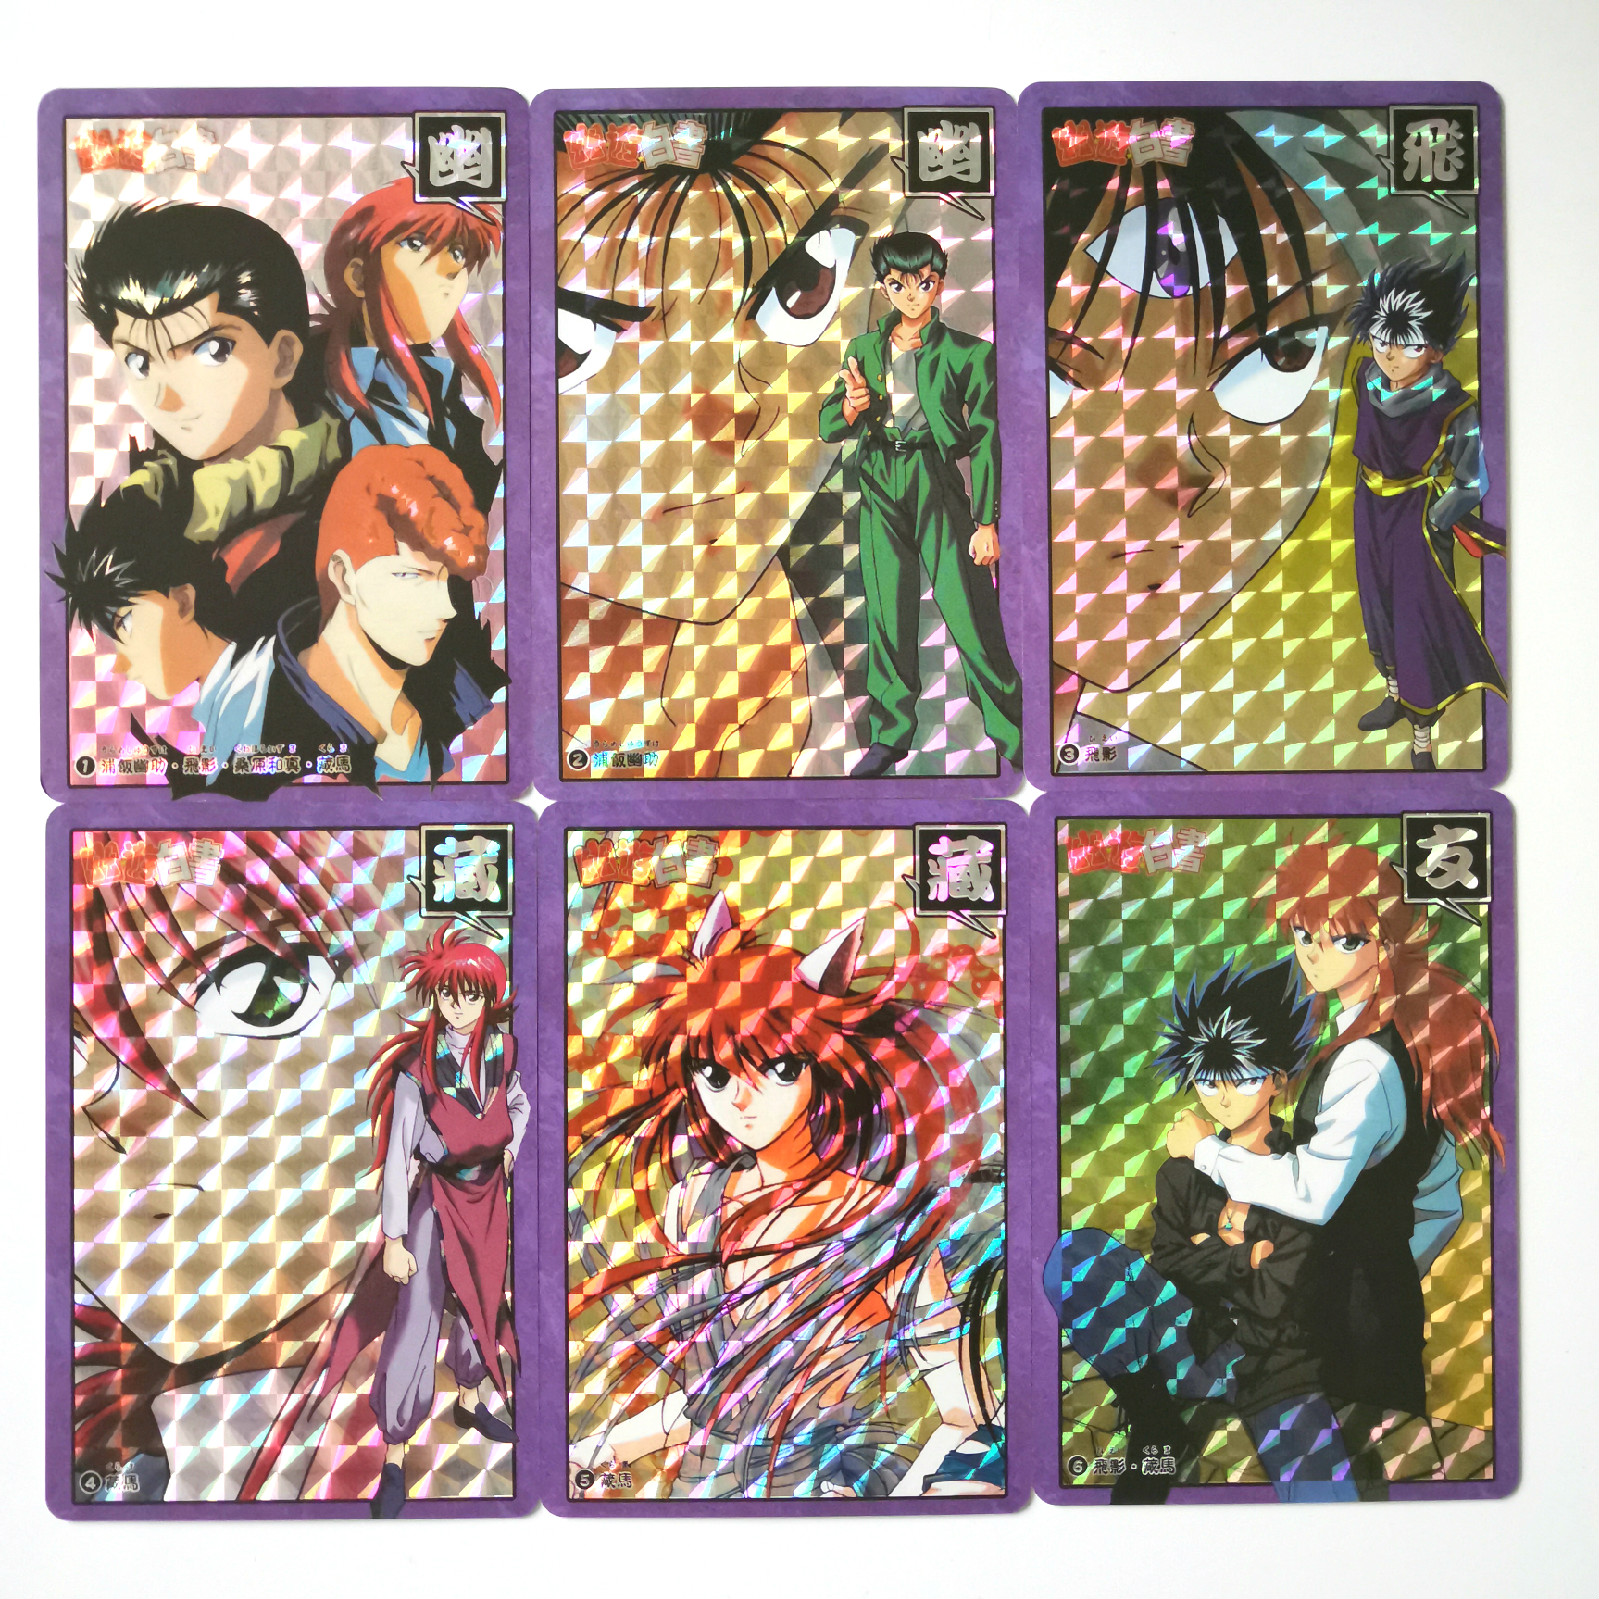 36pcs/set YuYu Hakusho Childhood Memories Square Flash Toys Hobbies Hobby Collectibles Game Collection Anime Cards